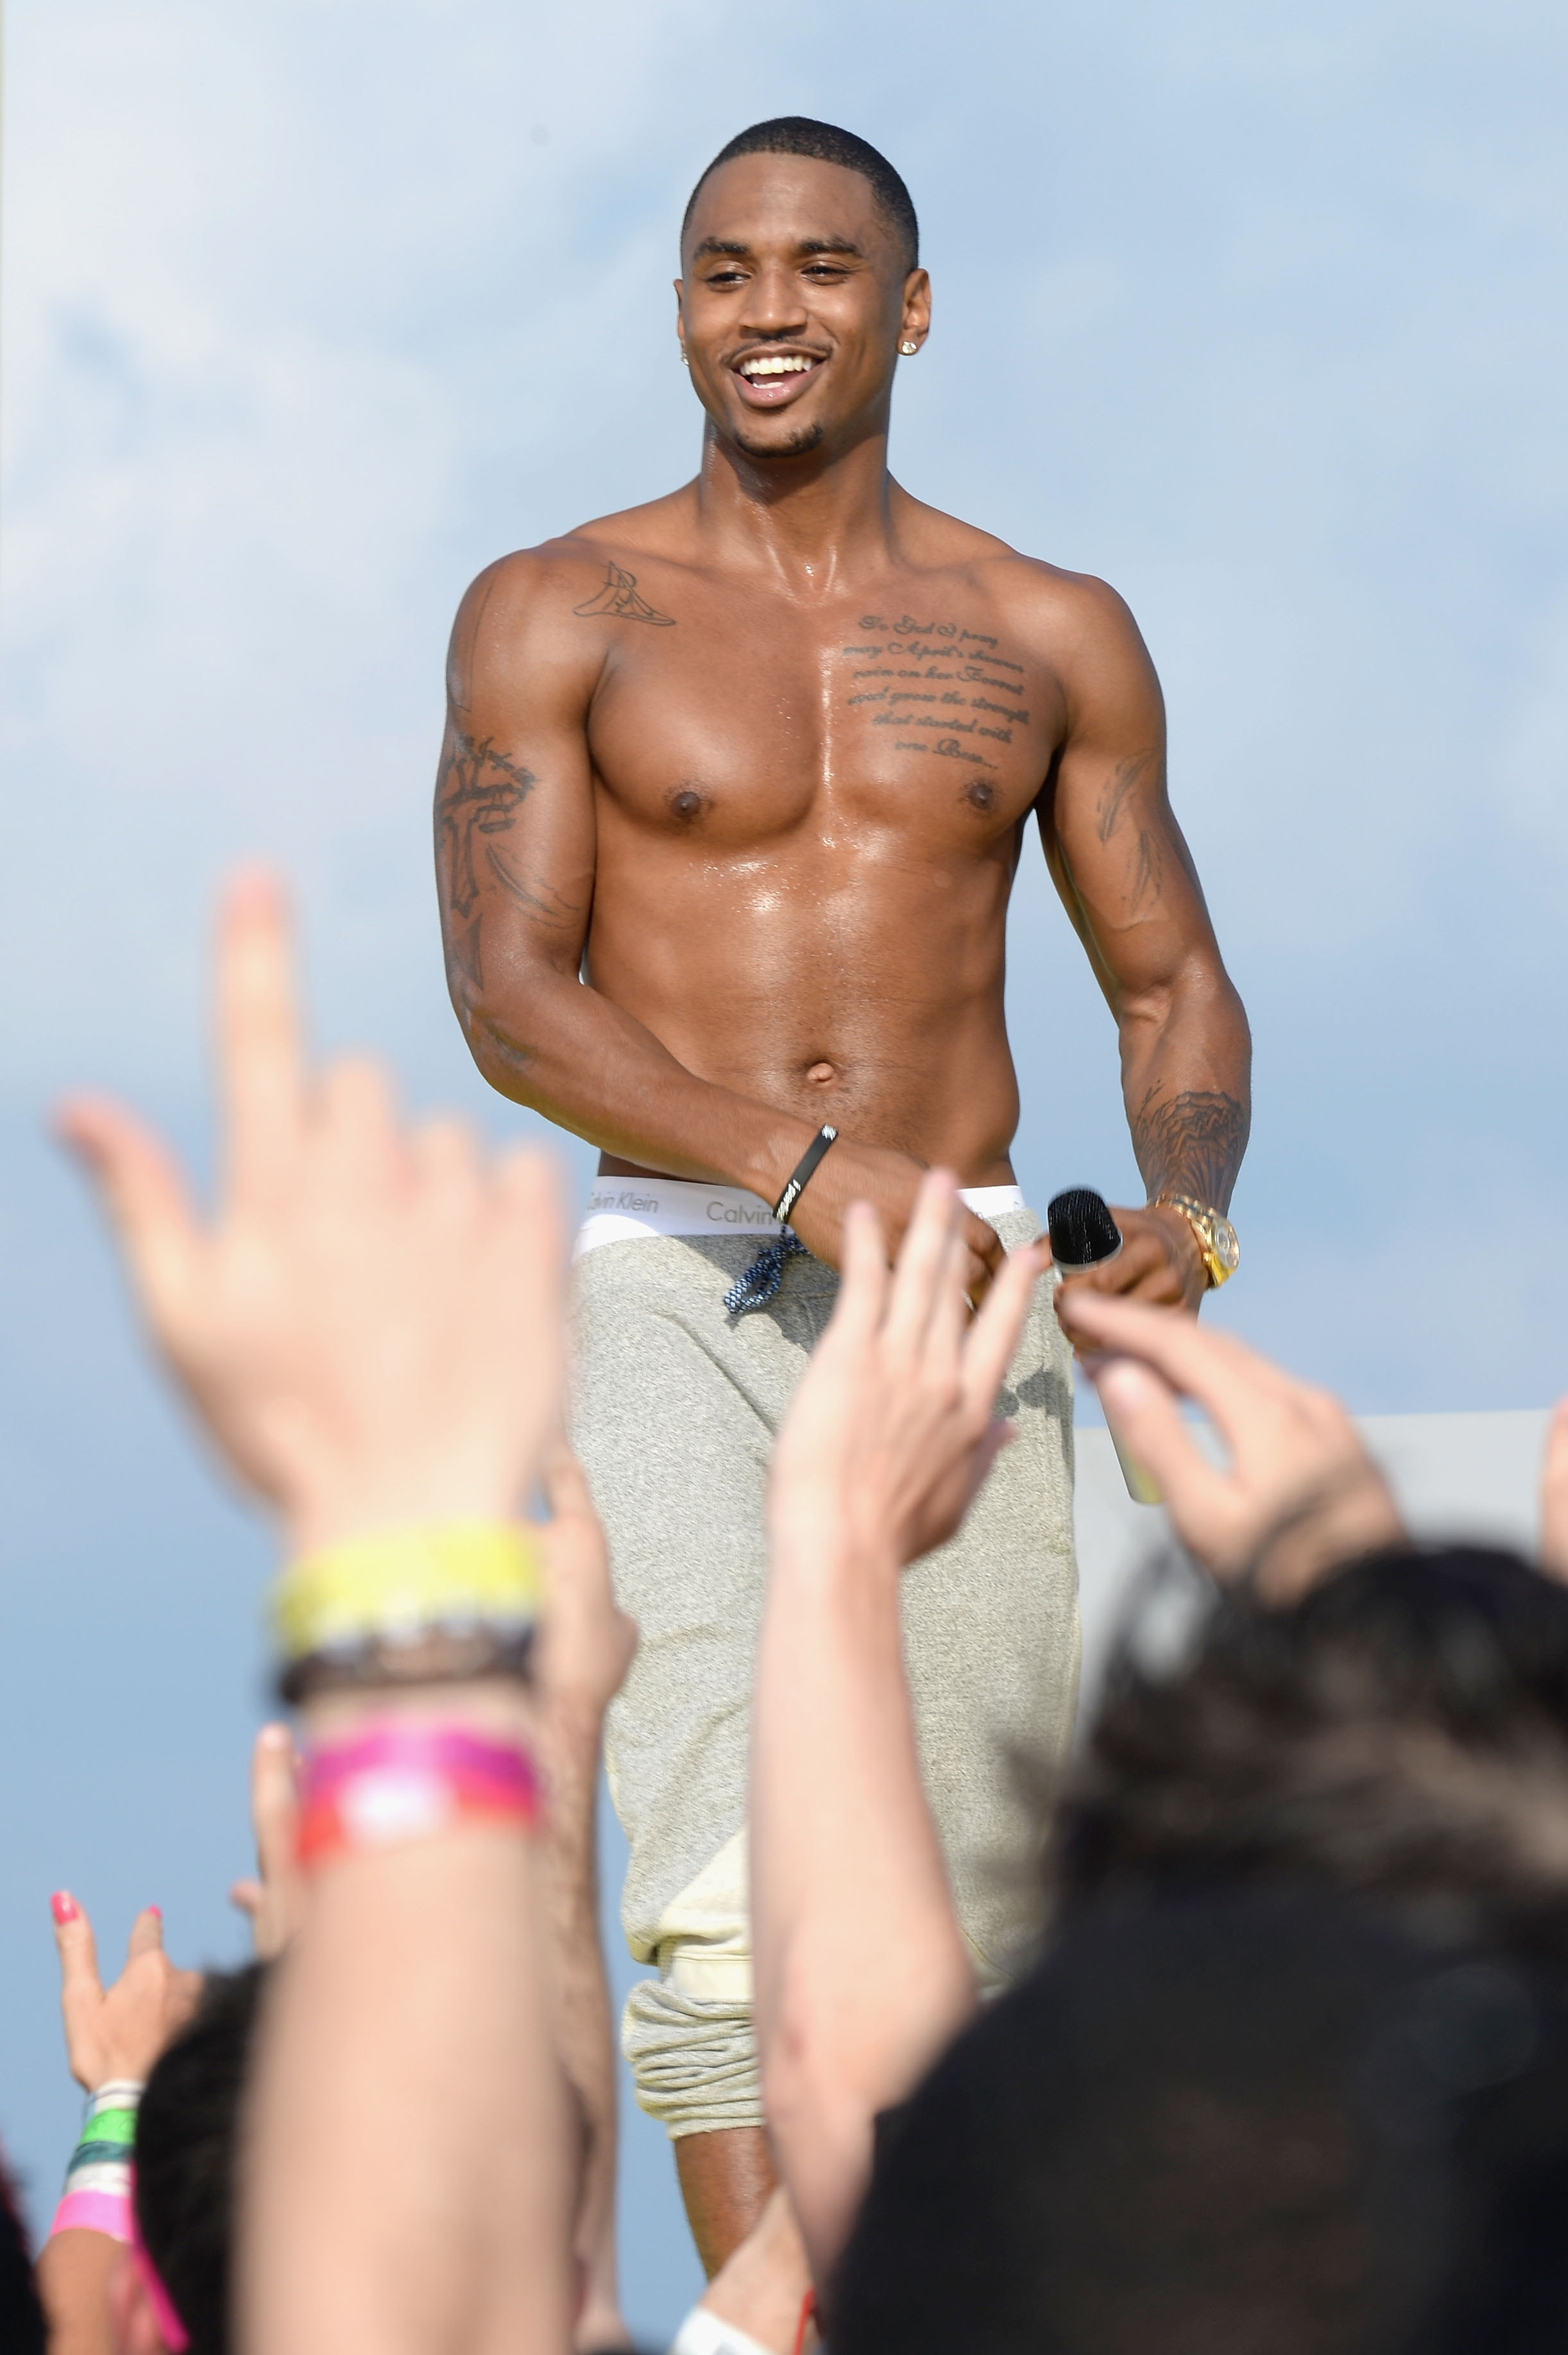 Fun in the sun: Trey Songz tapes a performance at mtvU Spring Break 2014 at the Grand Oasis Hotel in Cancun, Mexico, Friday. The show starts airing Monday.